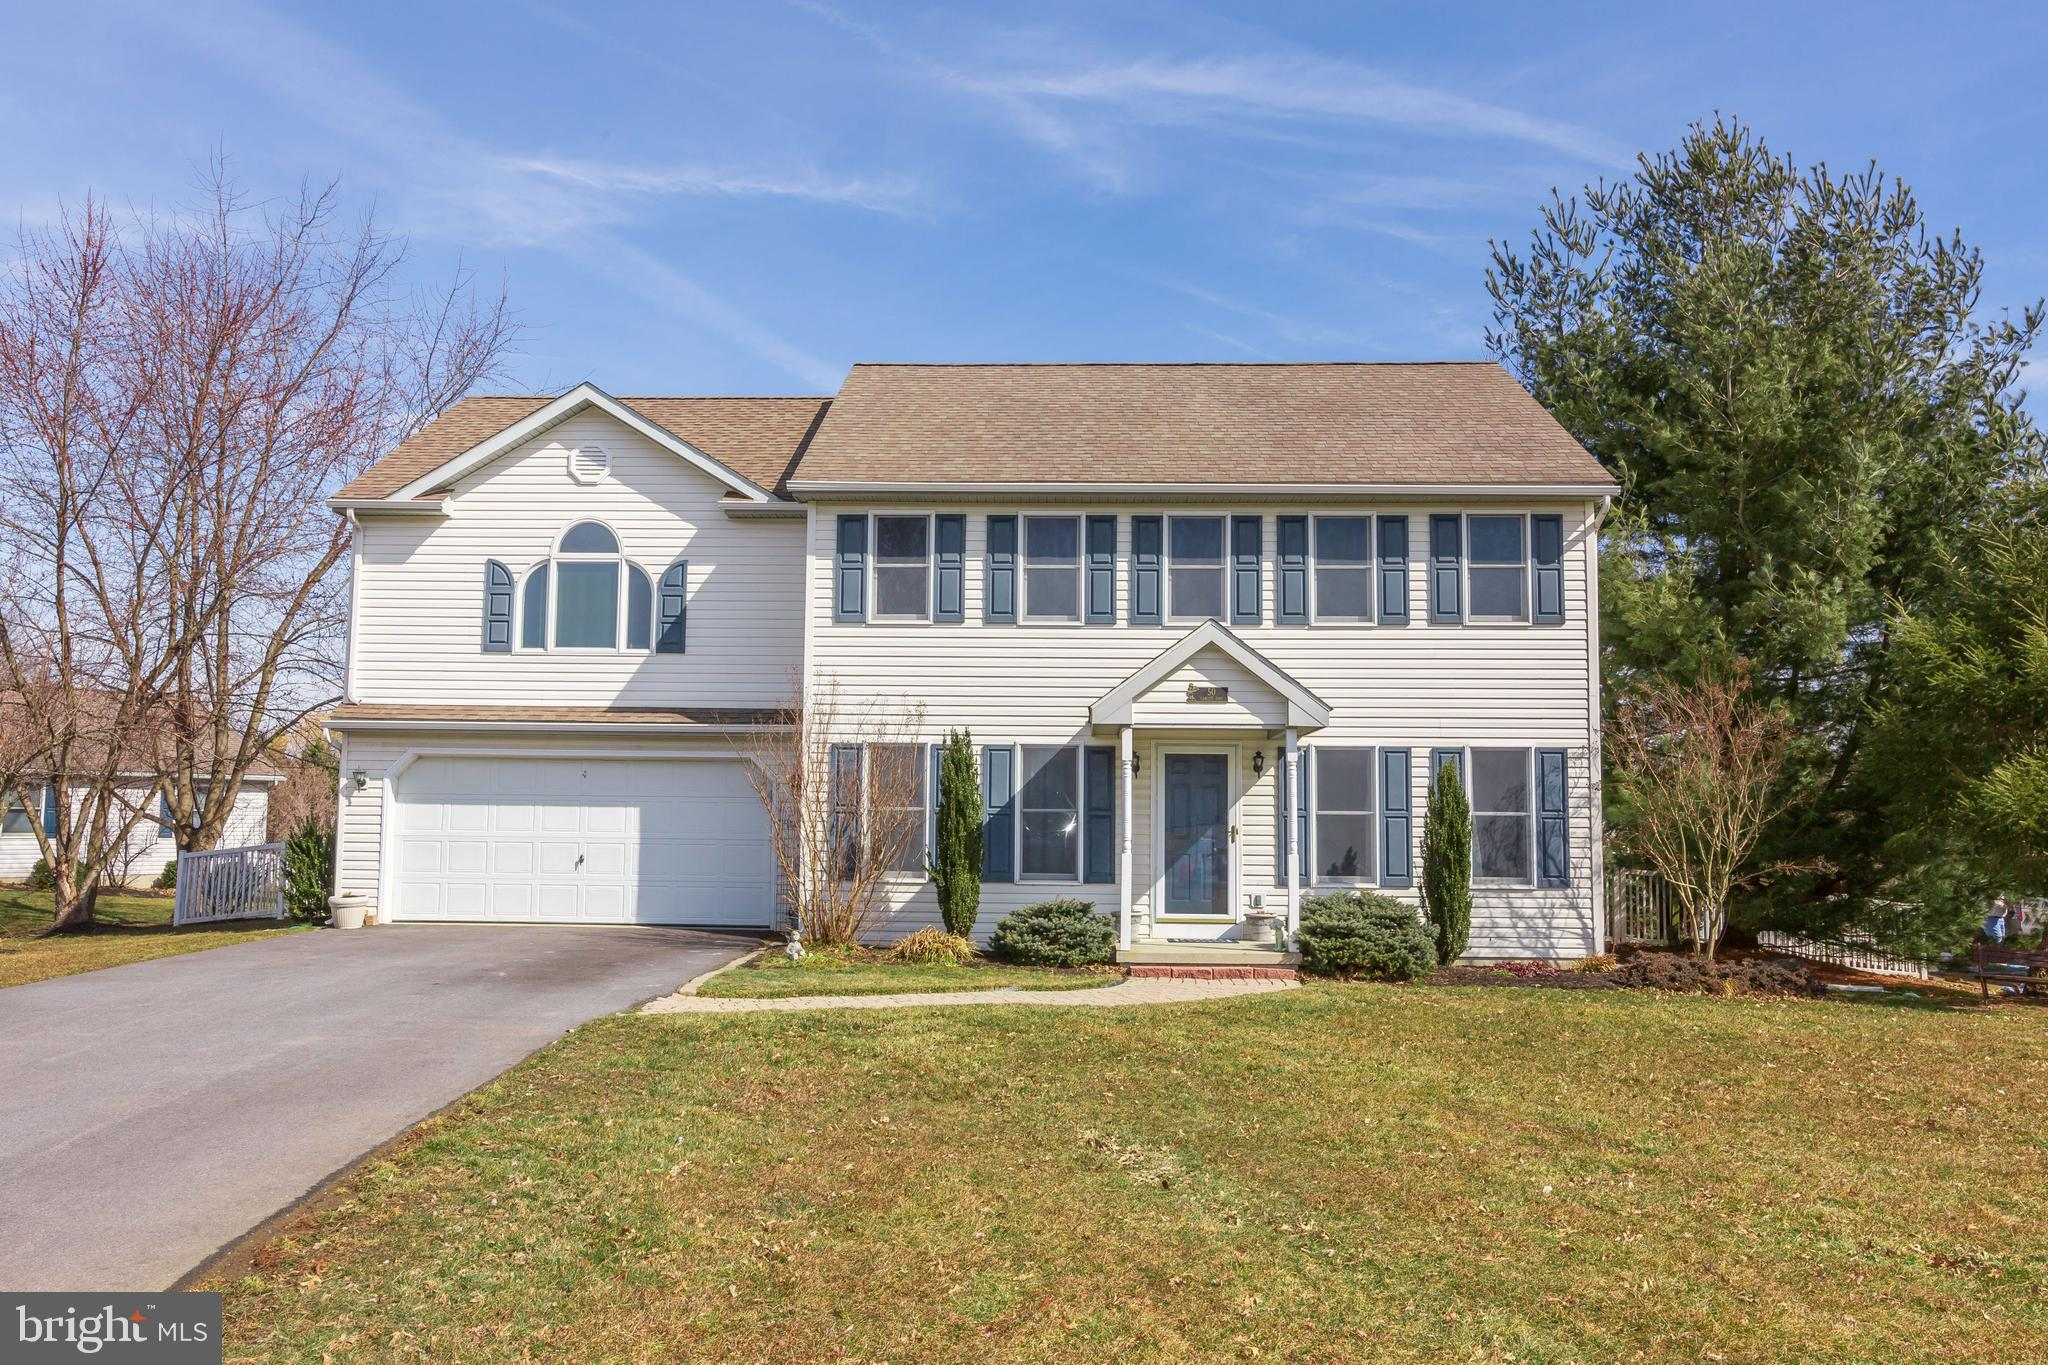 50 SCARLETT OAKS CIRCLE, HONEY BROOK, PA 19344